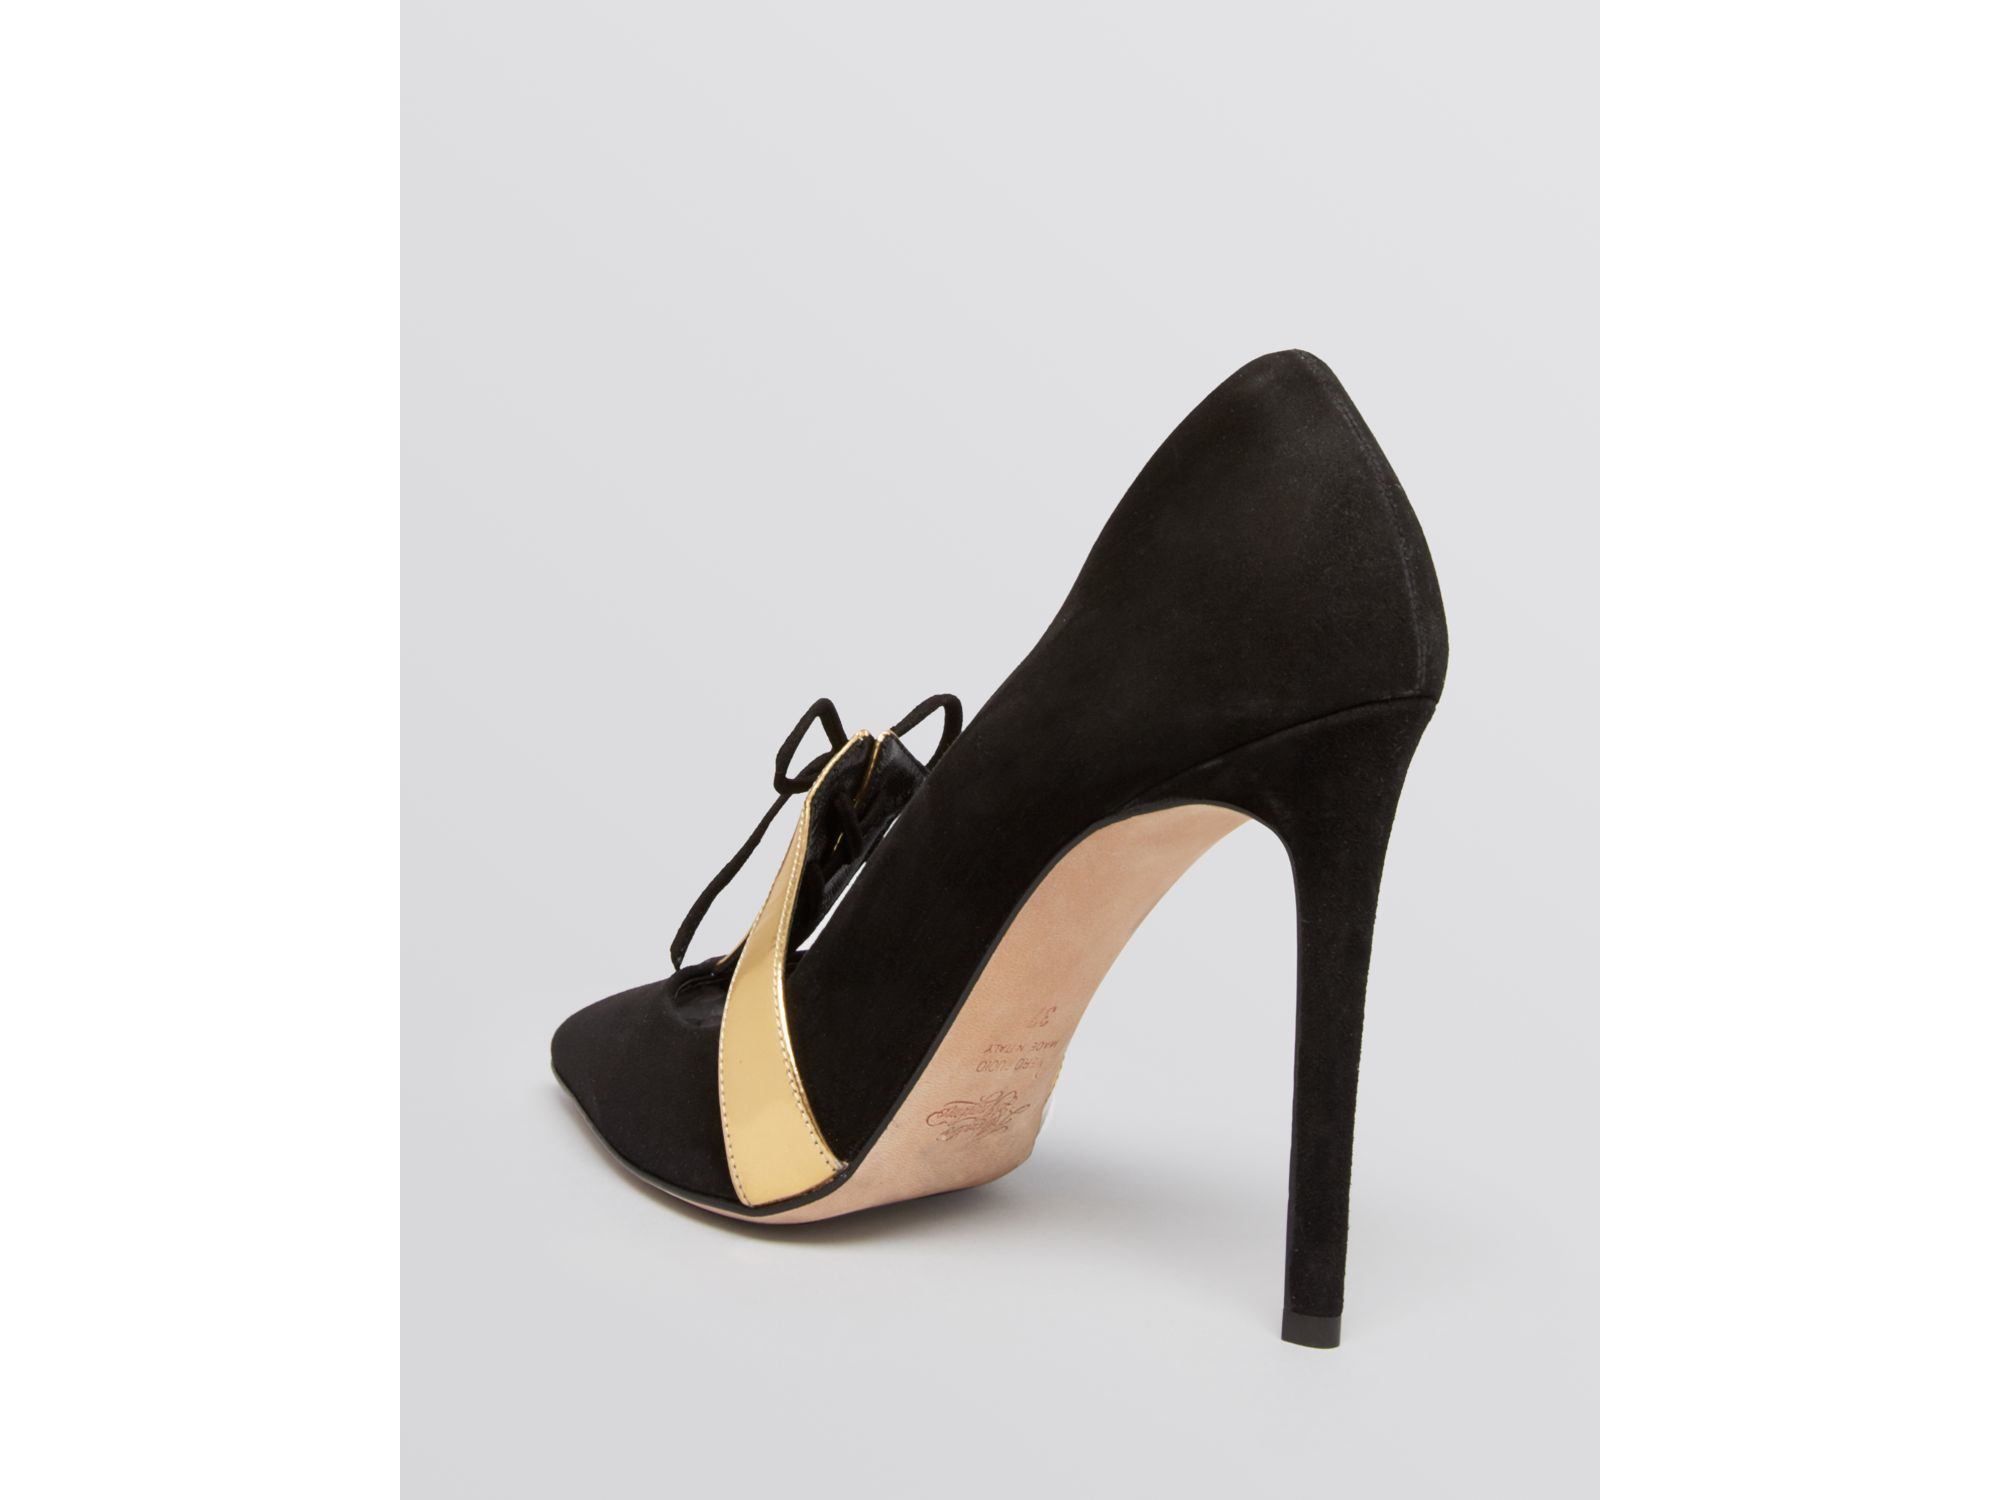 f4e6246404 Alejandro Ingelmo Pointed Toe Lace Up Oxford Pumps - Charlie High ...